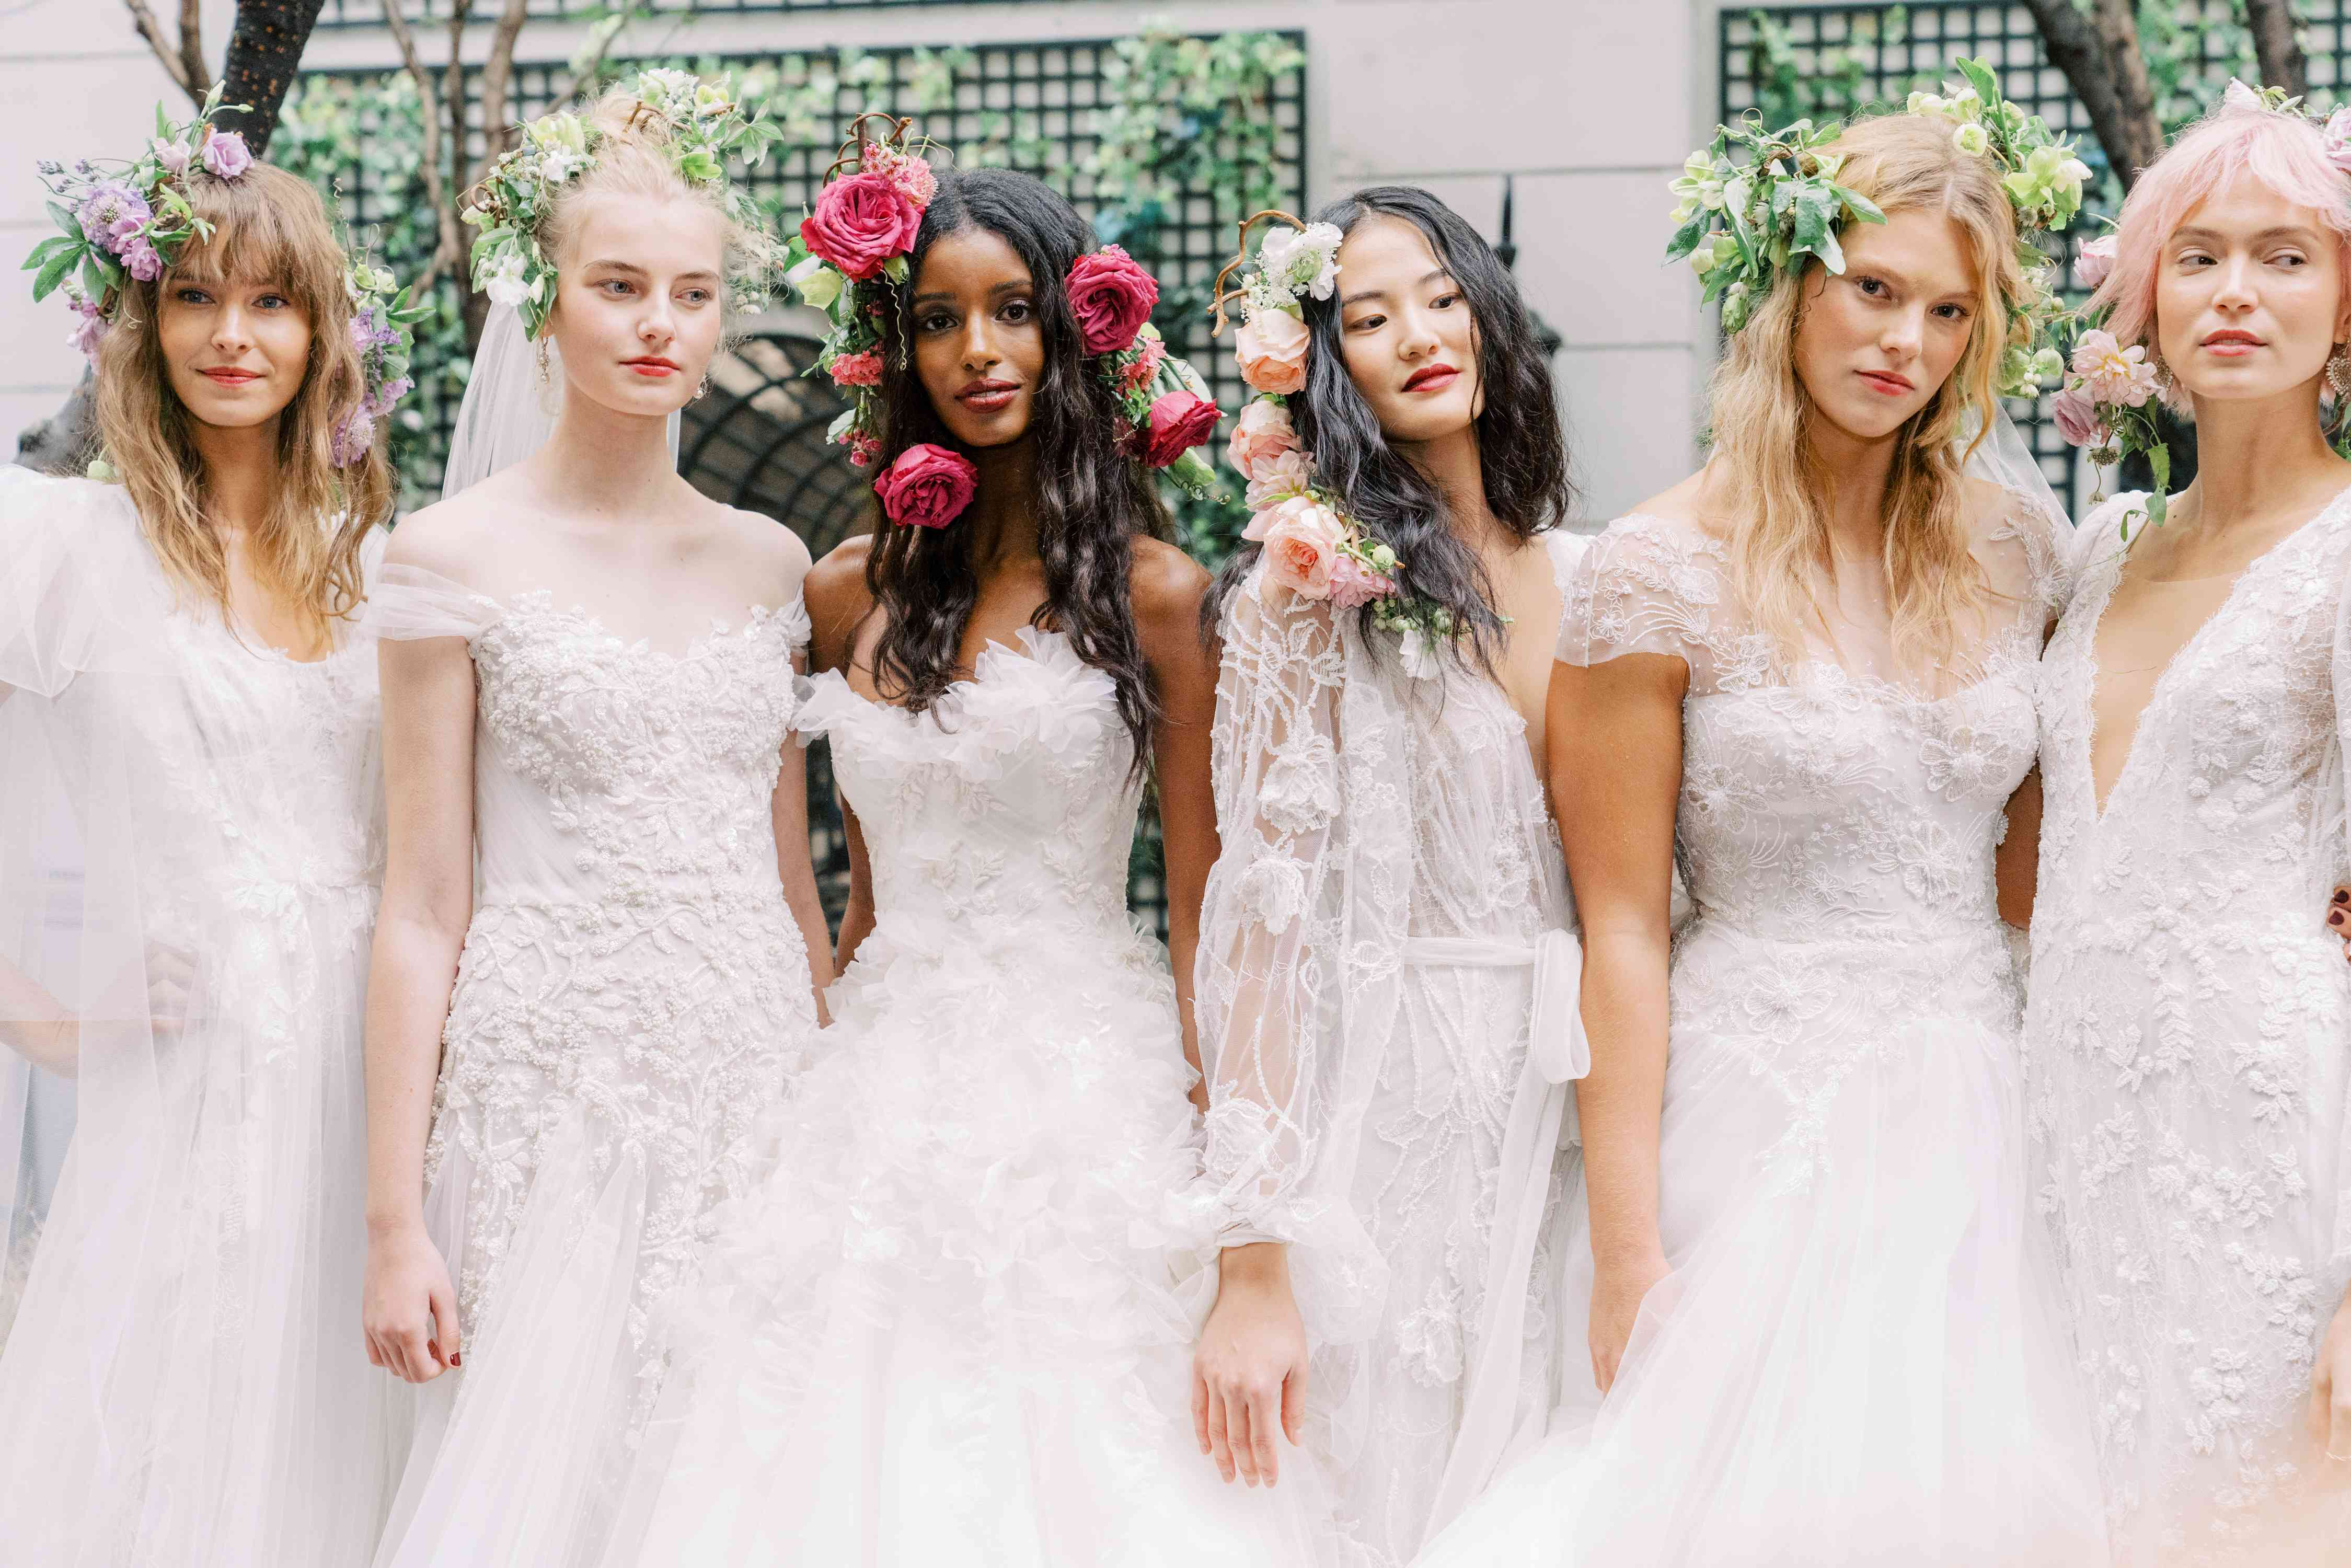 2020 Wedding Dress Trends.7 Wedding Hairstyle And Makeup Trends 2020 Brides Need To Know